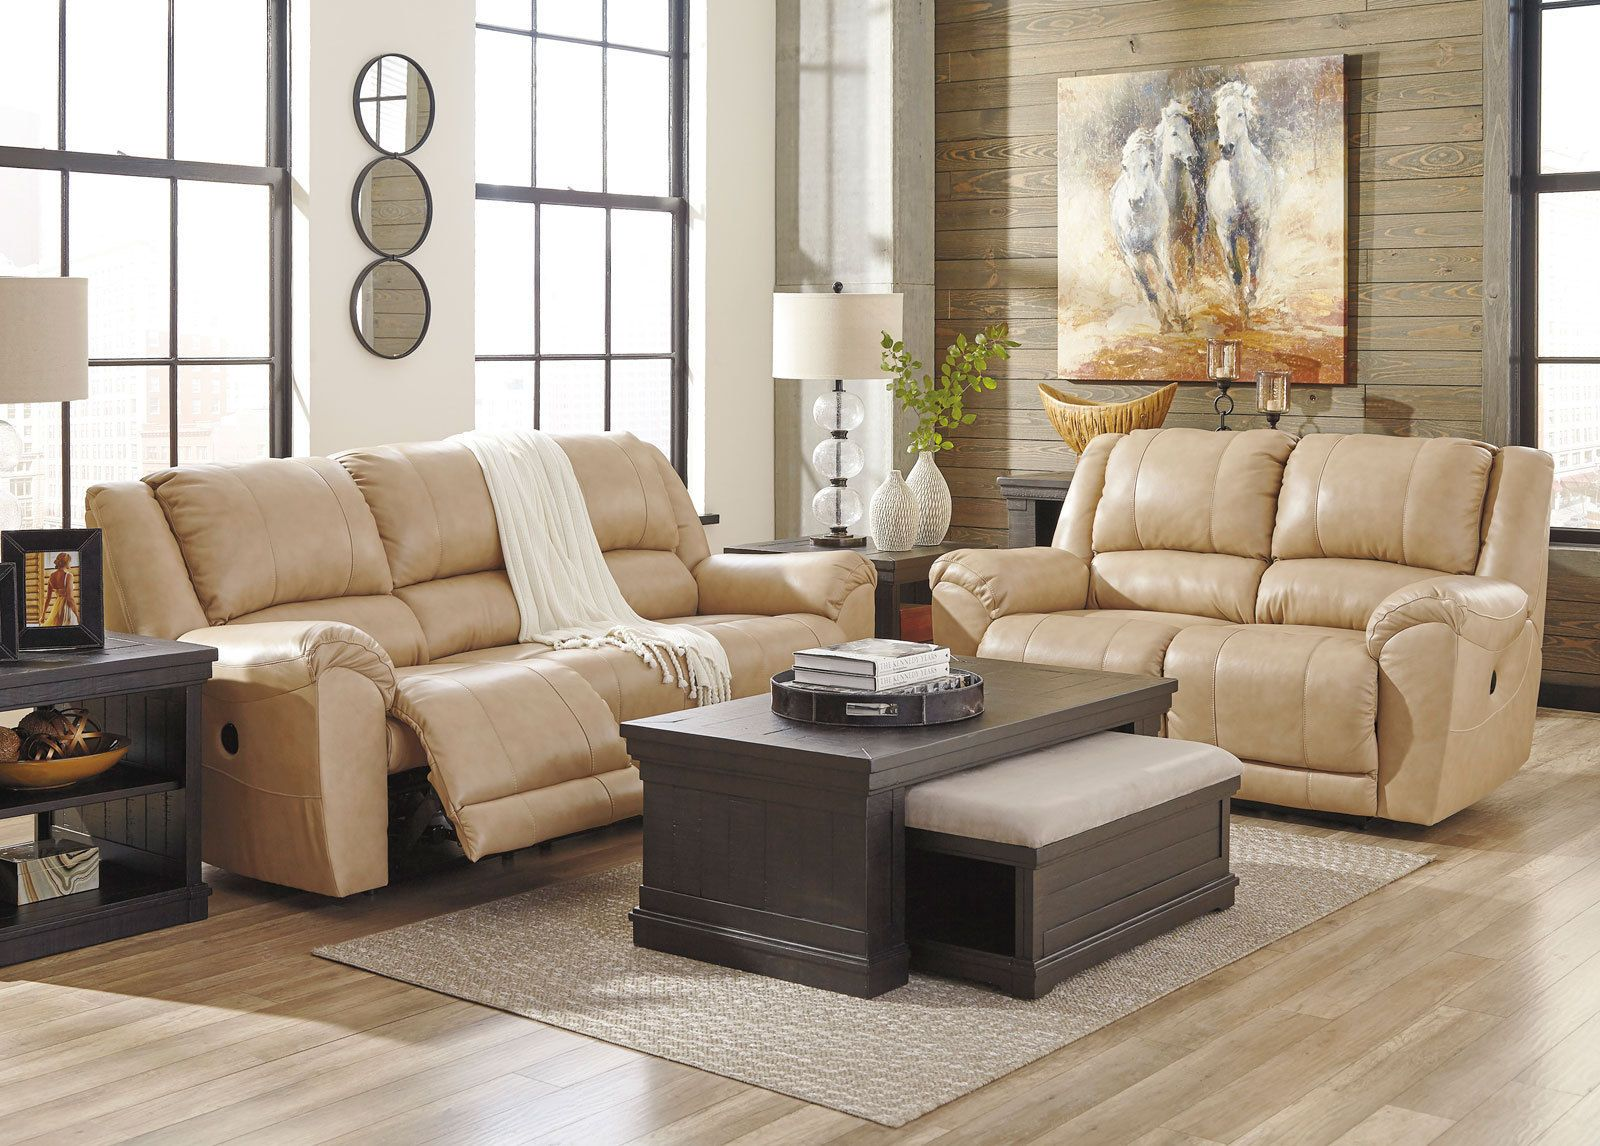 Excellent Planet Real Beige Leather Motion Reclining Sofa Couch Set Andrewgaddart Wooden Chair Designs For Living Room Andrewgaddartcom